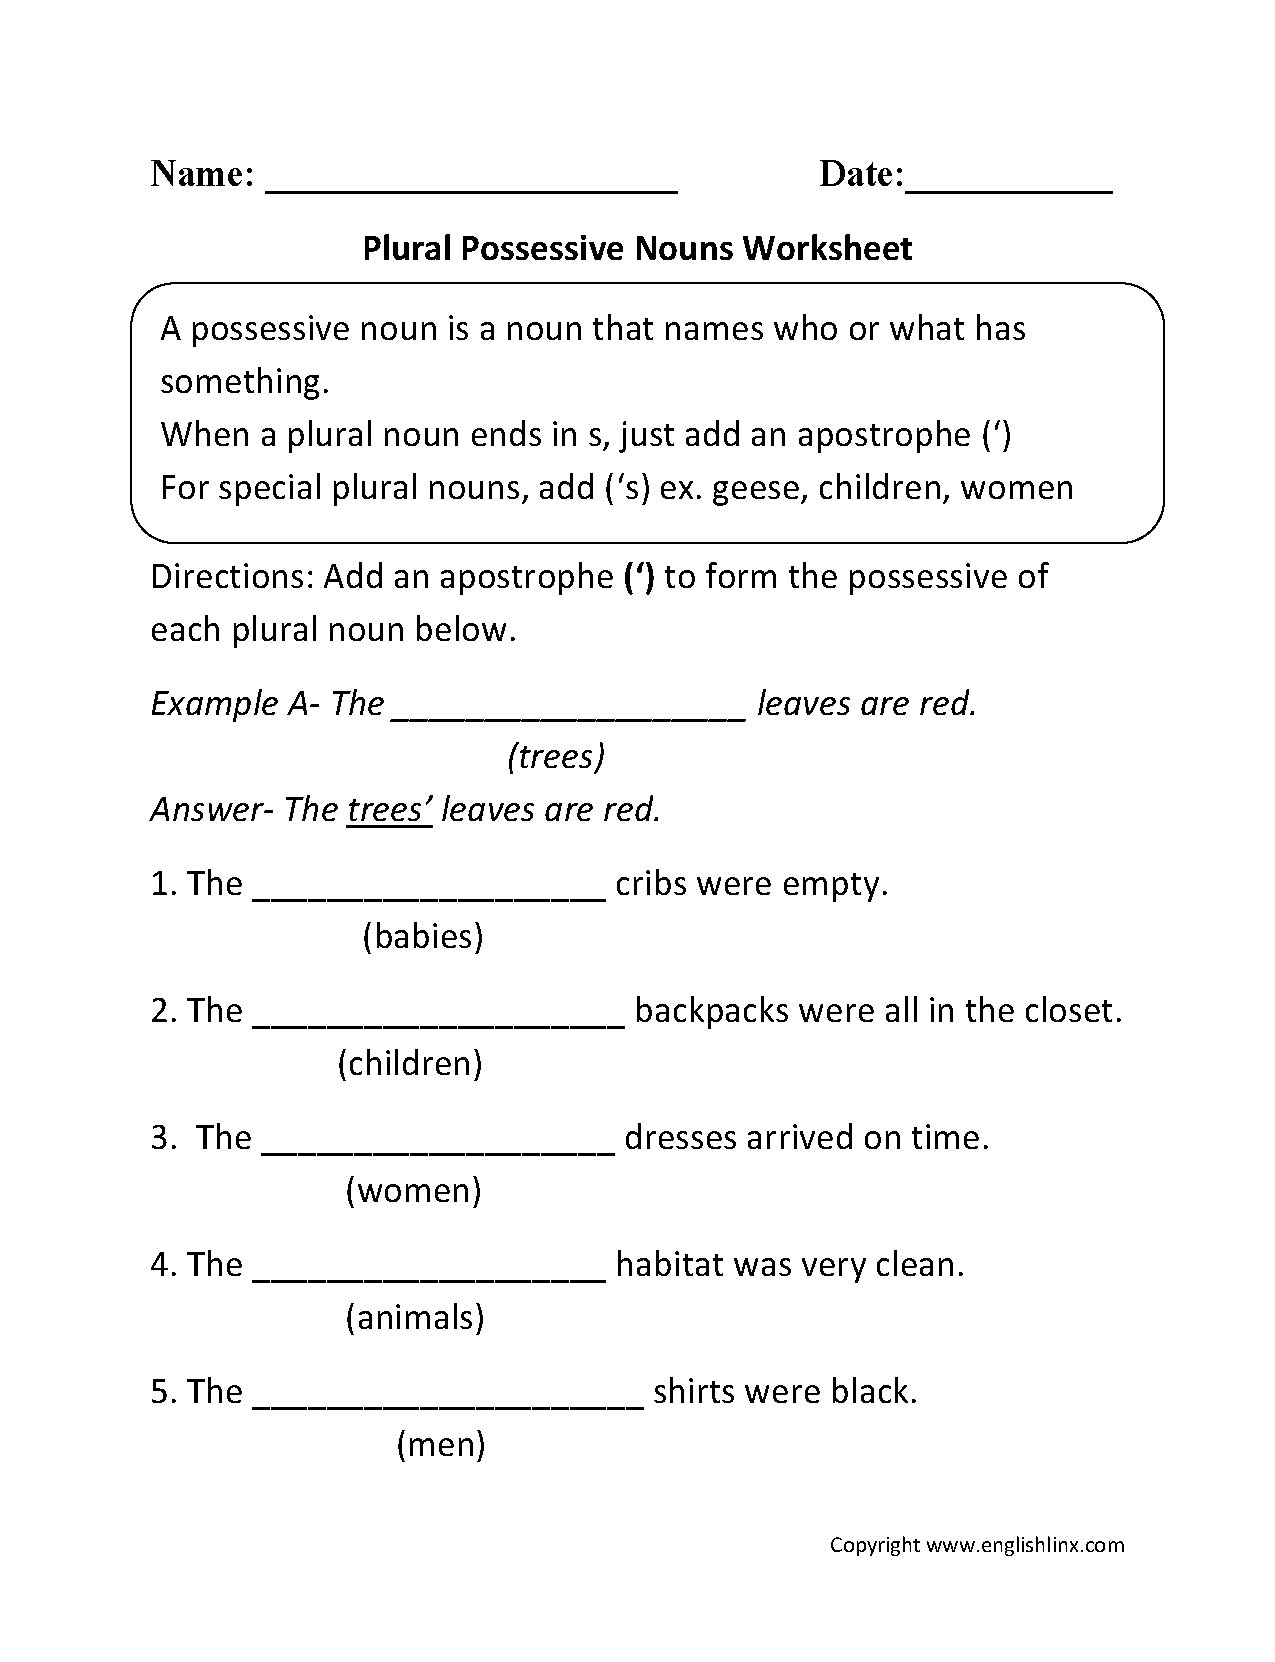 Aldiablosus  Pleasing Nouns Worksheets  Possessive Nouns Worksheets With Entrancing Possessive Nouns Worksheets With Amazing K Worksheets Also English Worksheet Grade  In Addition Grade  Vocabulary Worksheets And Esl Days Of The Week Worksheet As Well As Stopping Distance Worksheet Additionally Fraction And Decimals Worksheets From Englishlinxcom With Aldiablosus  Entrancing Nouns Worksheets  Possessive Nouns Worksheets With Amazing Possessive Nouns Worksheets And Pleasing K Worksheets Also English Worksheet Grade  In Addition Grade  Vocabulary Worksheets From Englishlinxcom